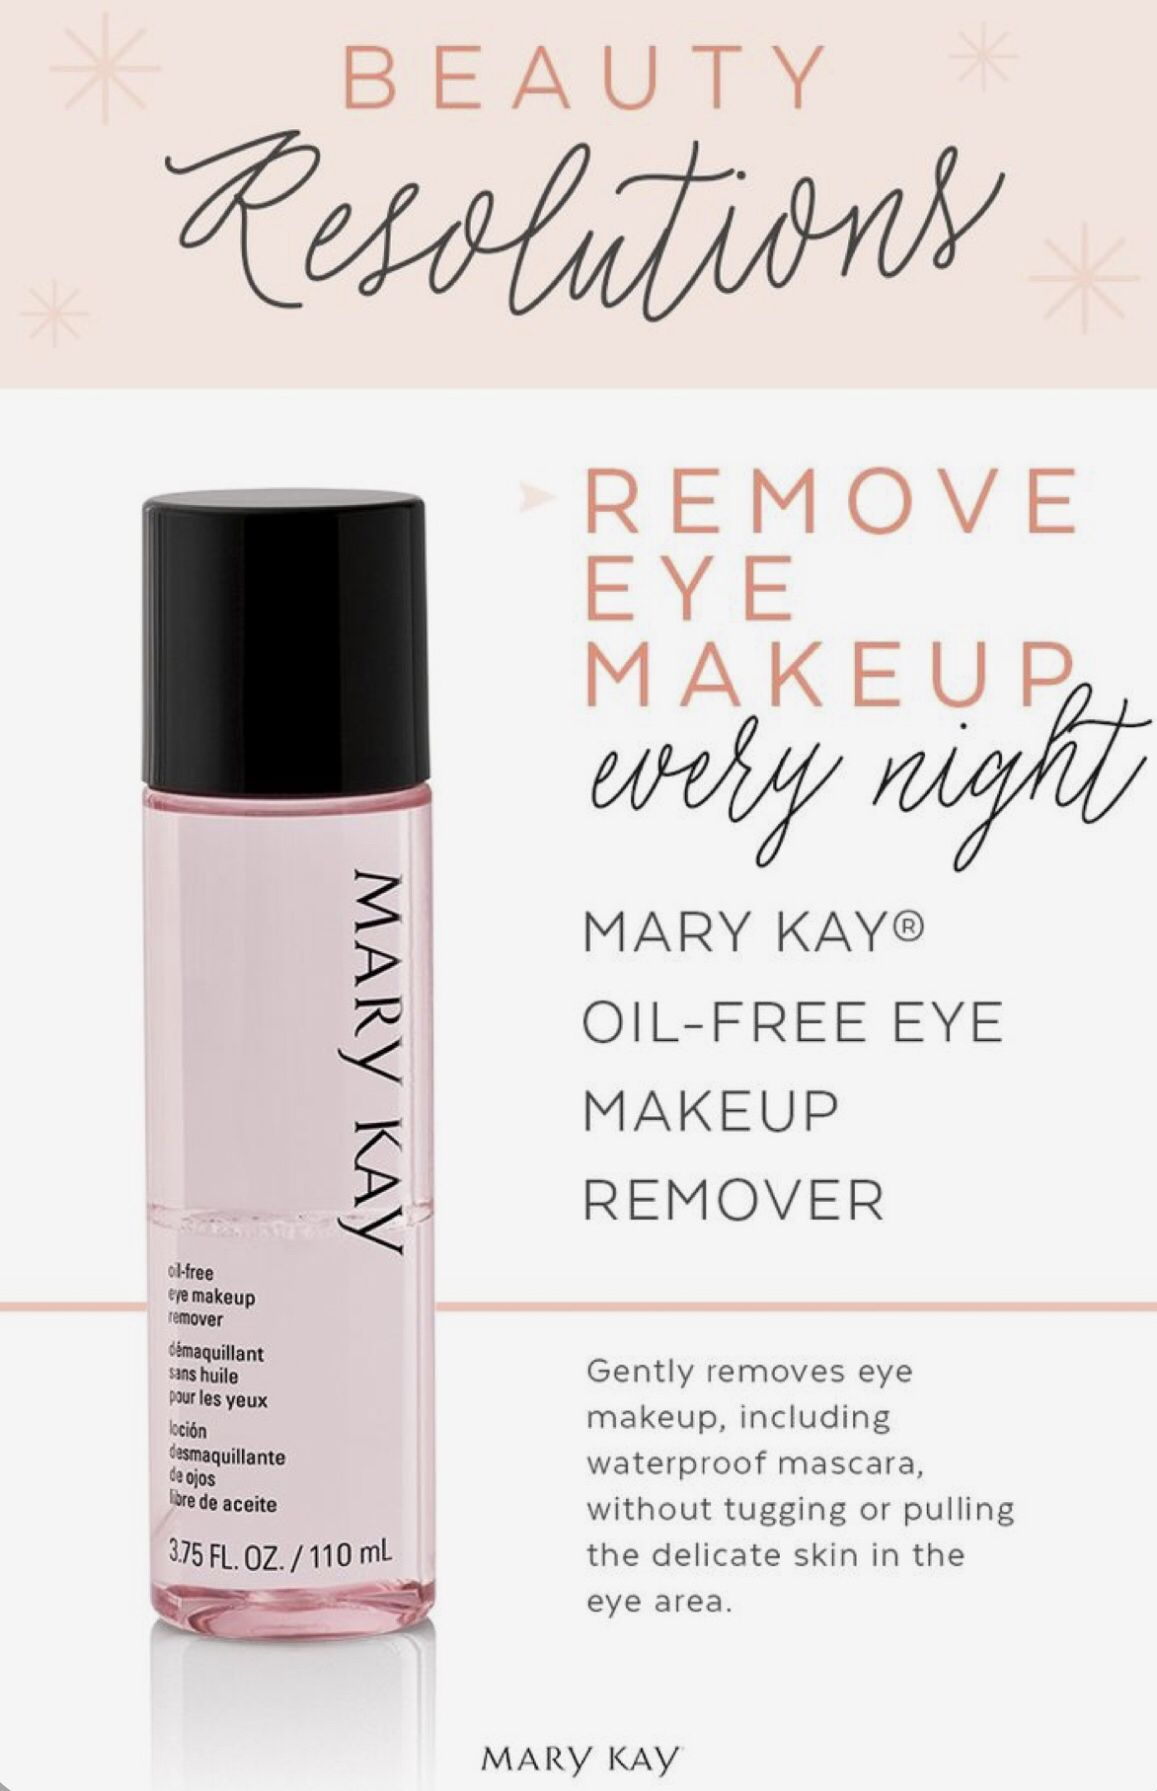 ff2d7c080154c560df1eb74e698b154a - How To Get Eye Makeup Off Without Makeup Remover